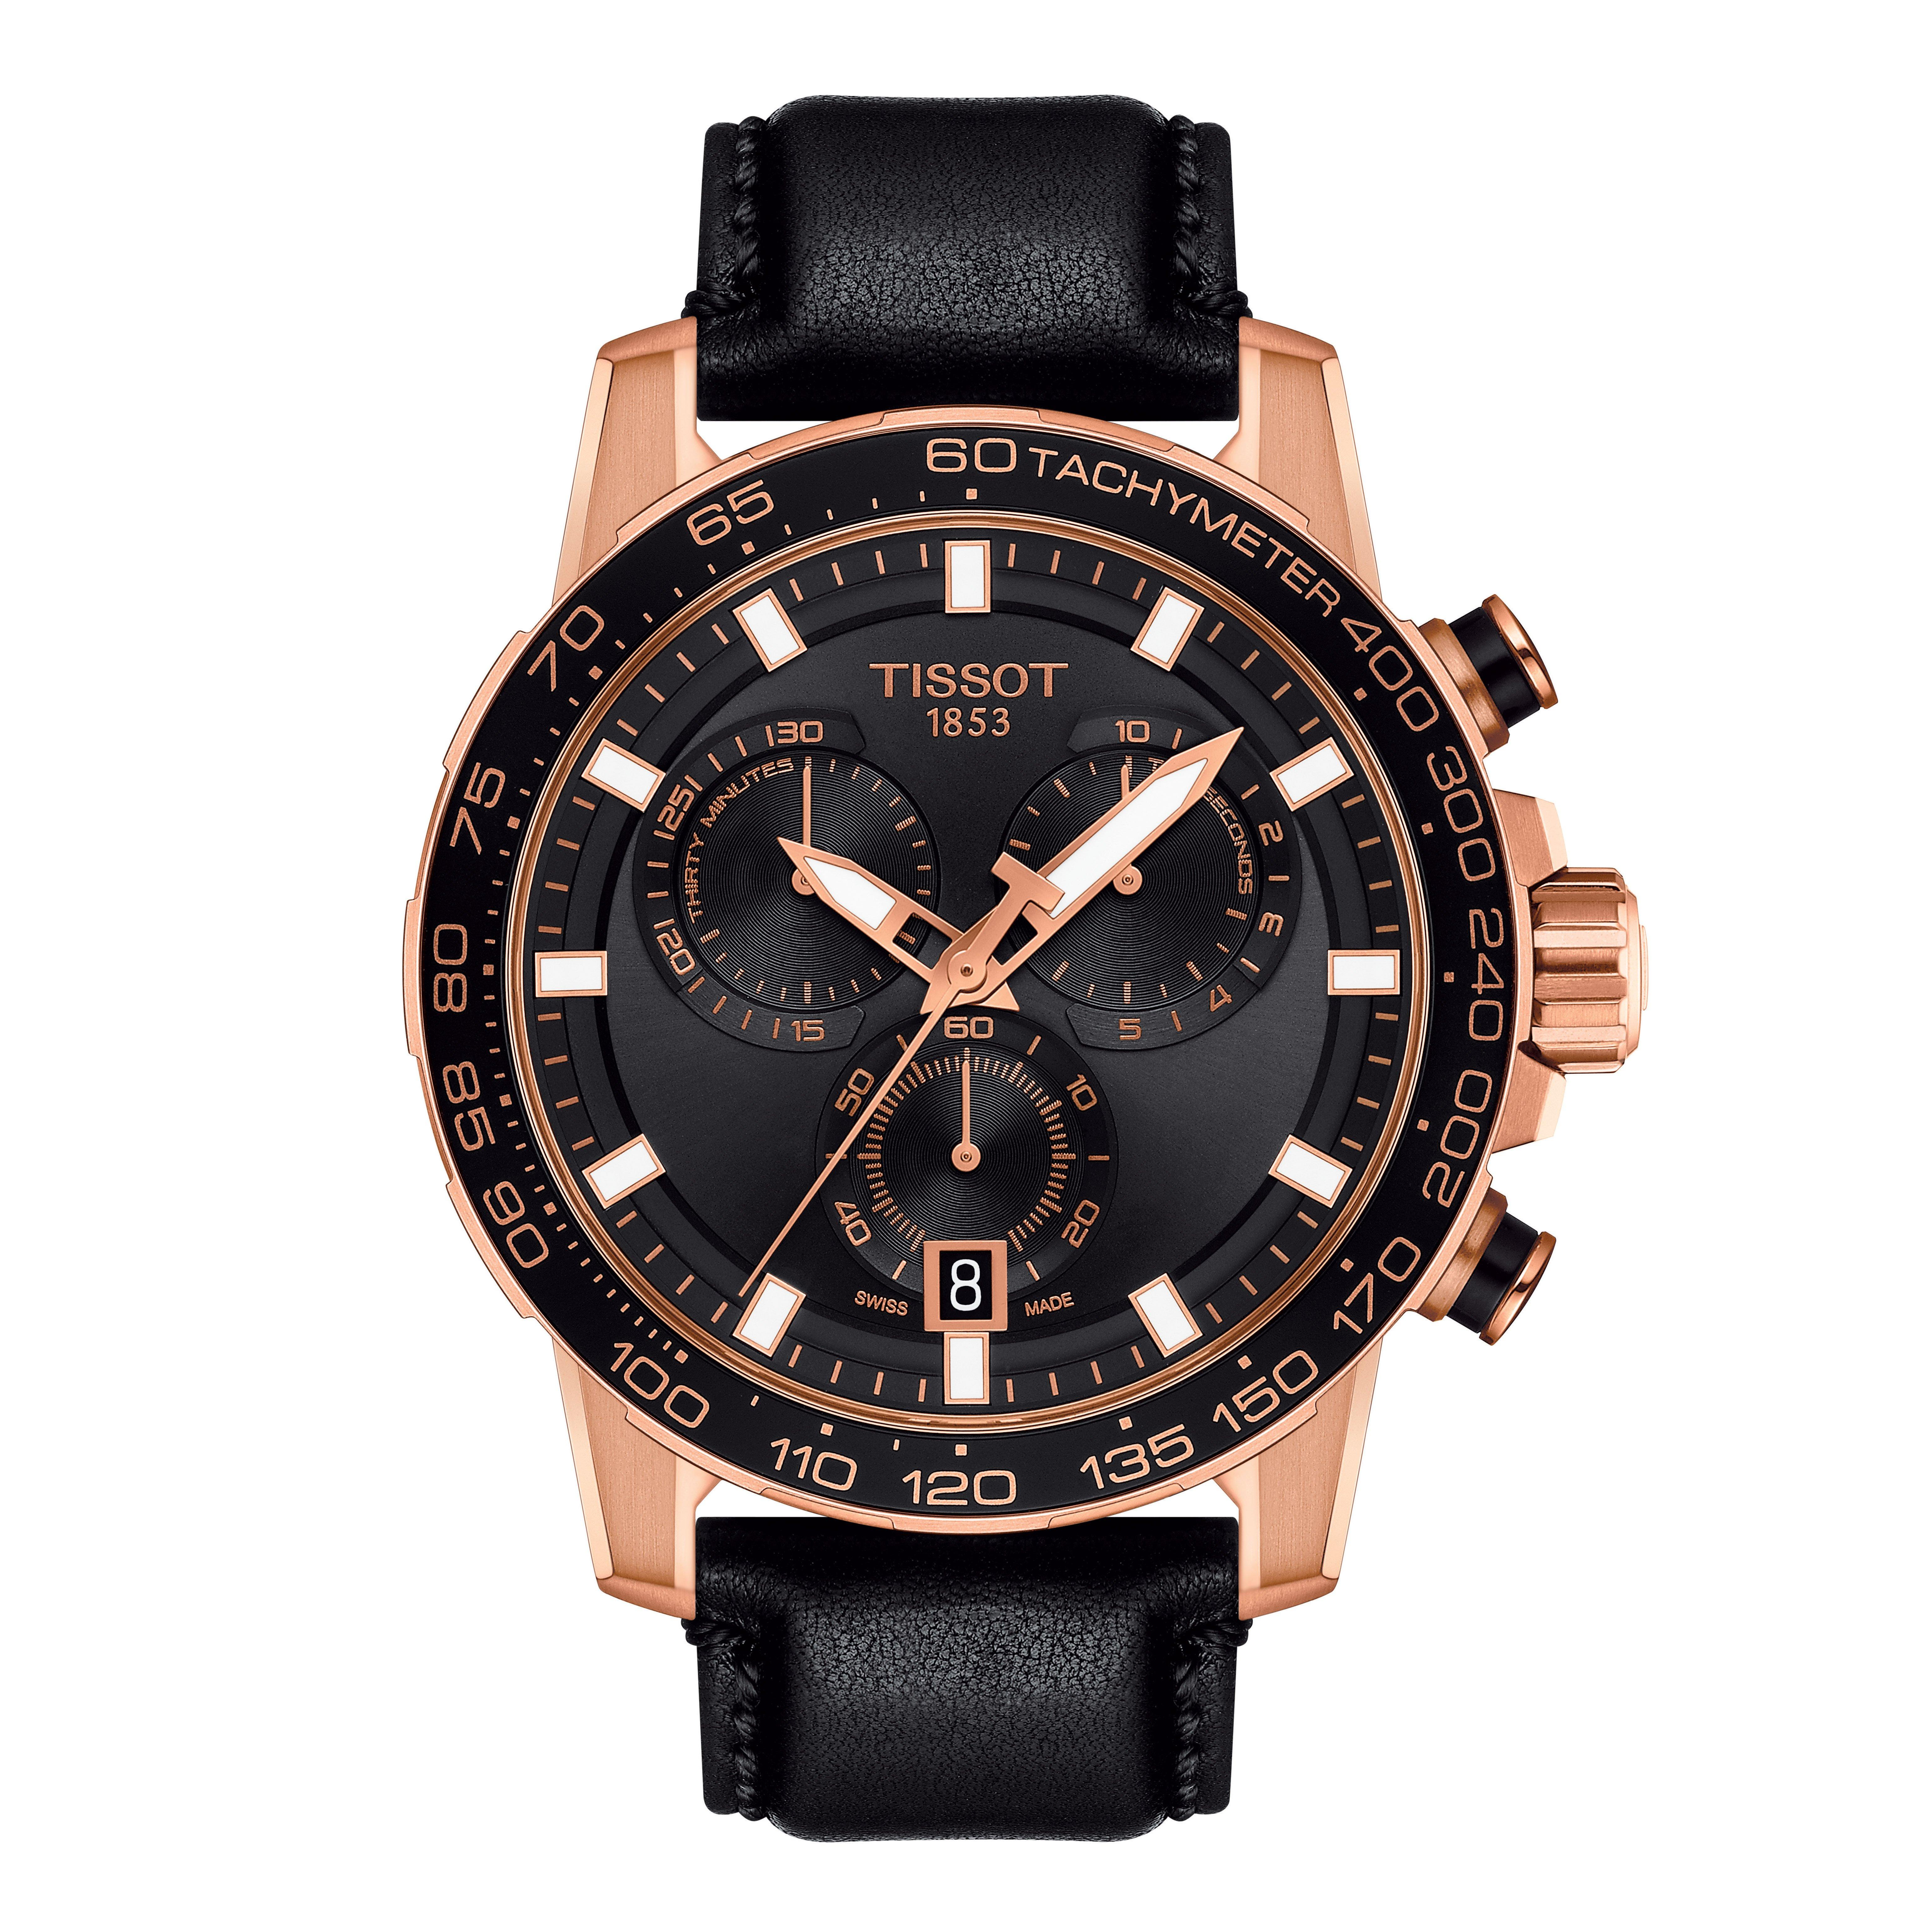 Tissot Supersport Chrono Rose Gold Plated Chronograph Men's Watch